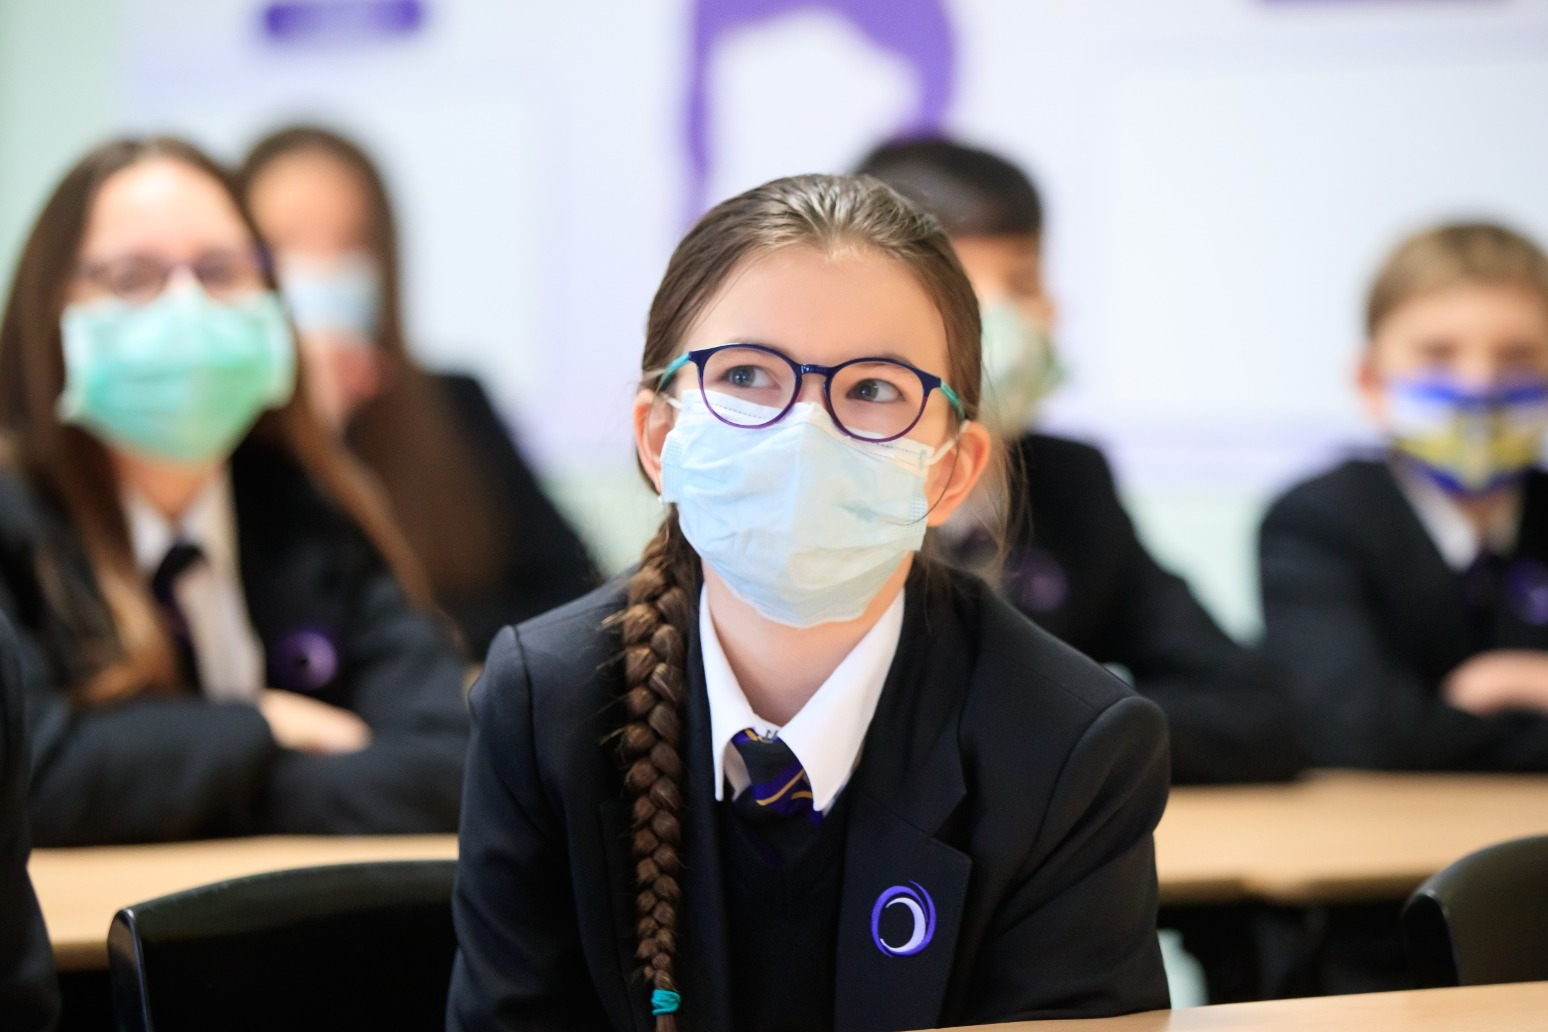 Masks could return to classrooms in England to stem spread of coronavirus thumbnail